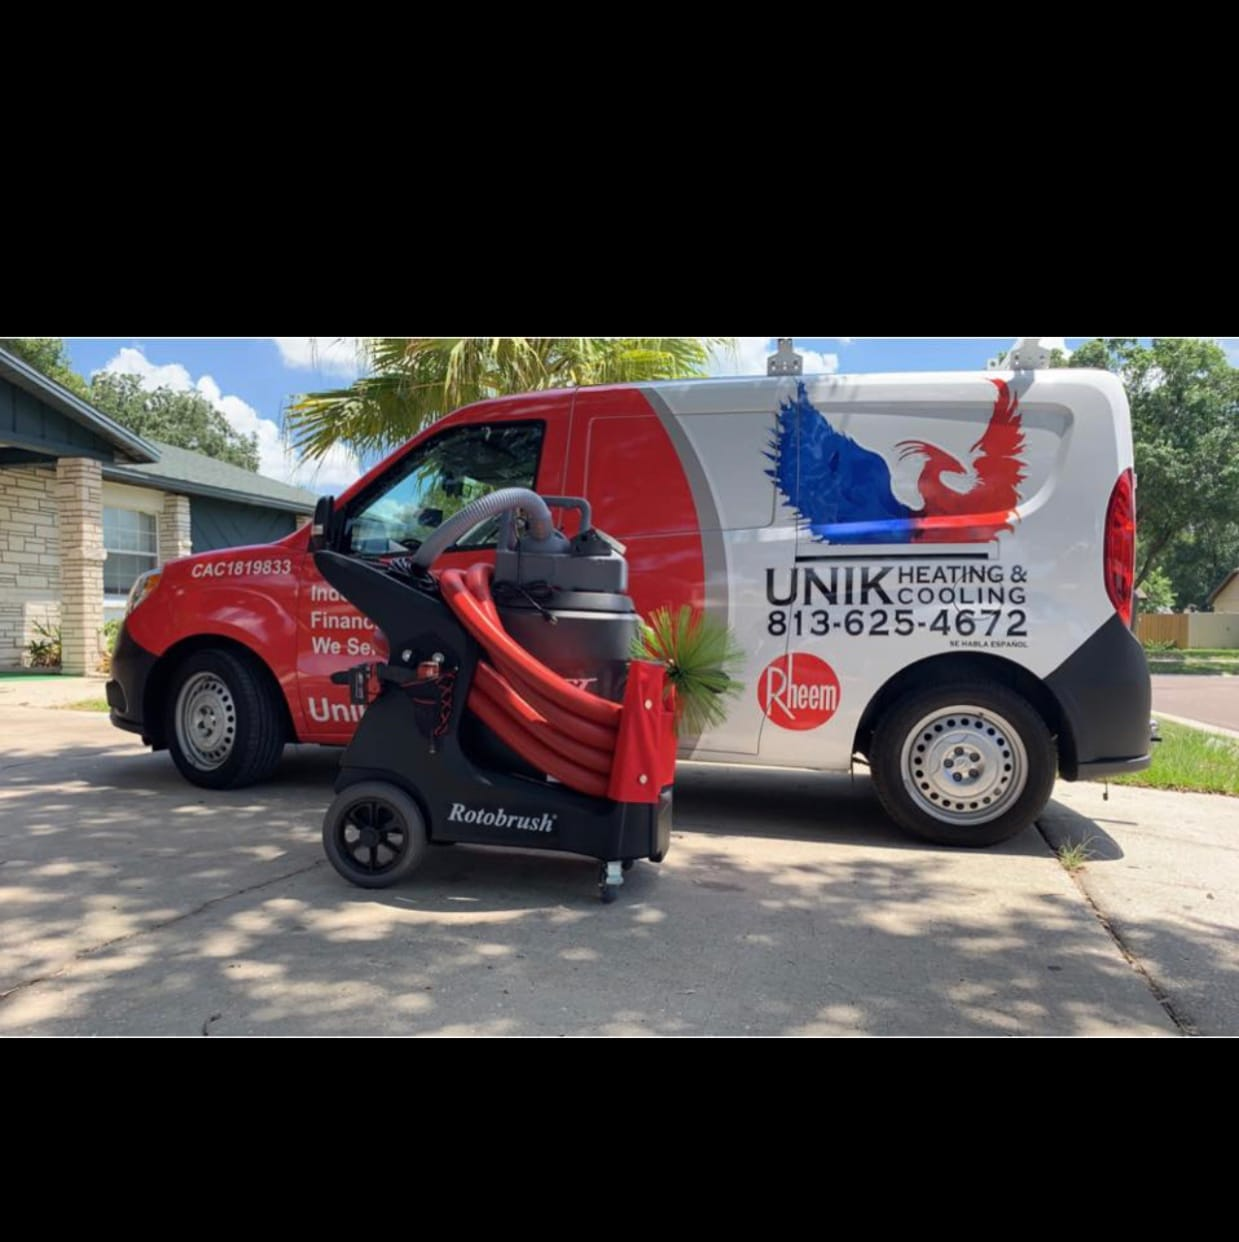 Unik Heating and Cooling Inc